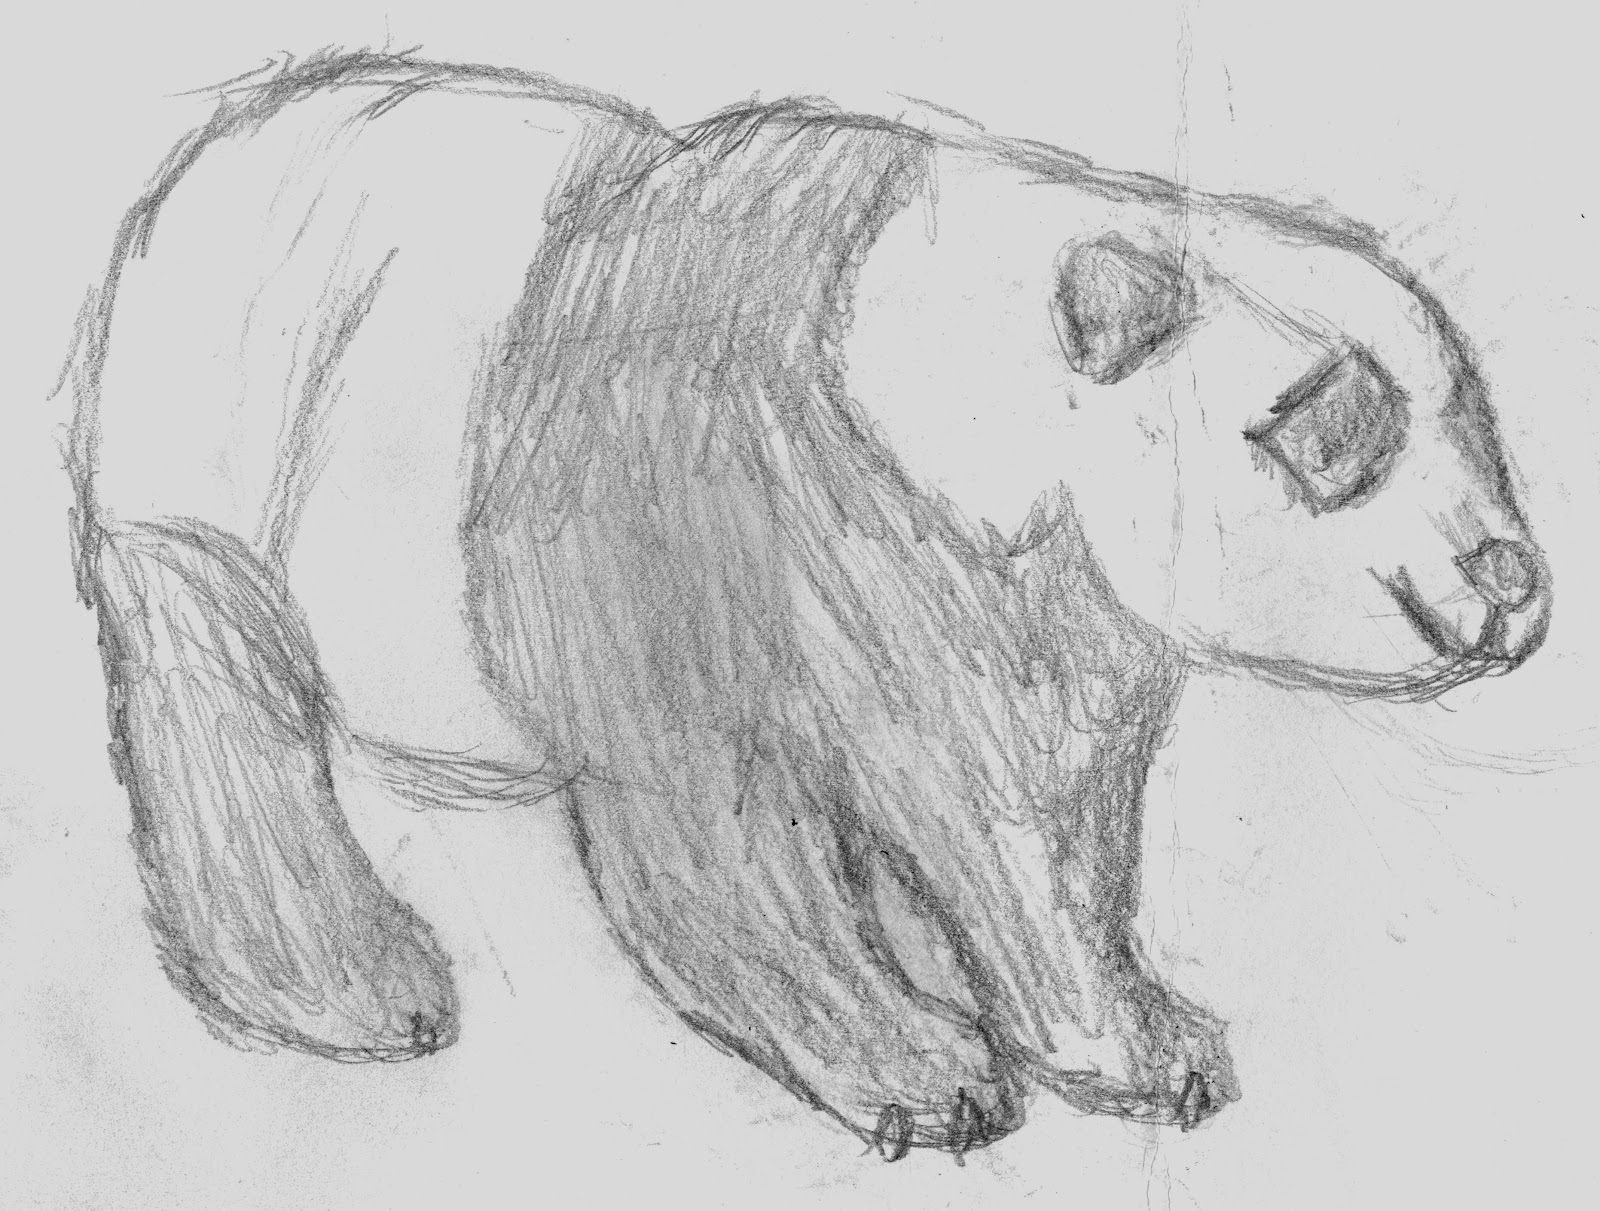 Second Observational Drawing Blog